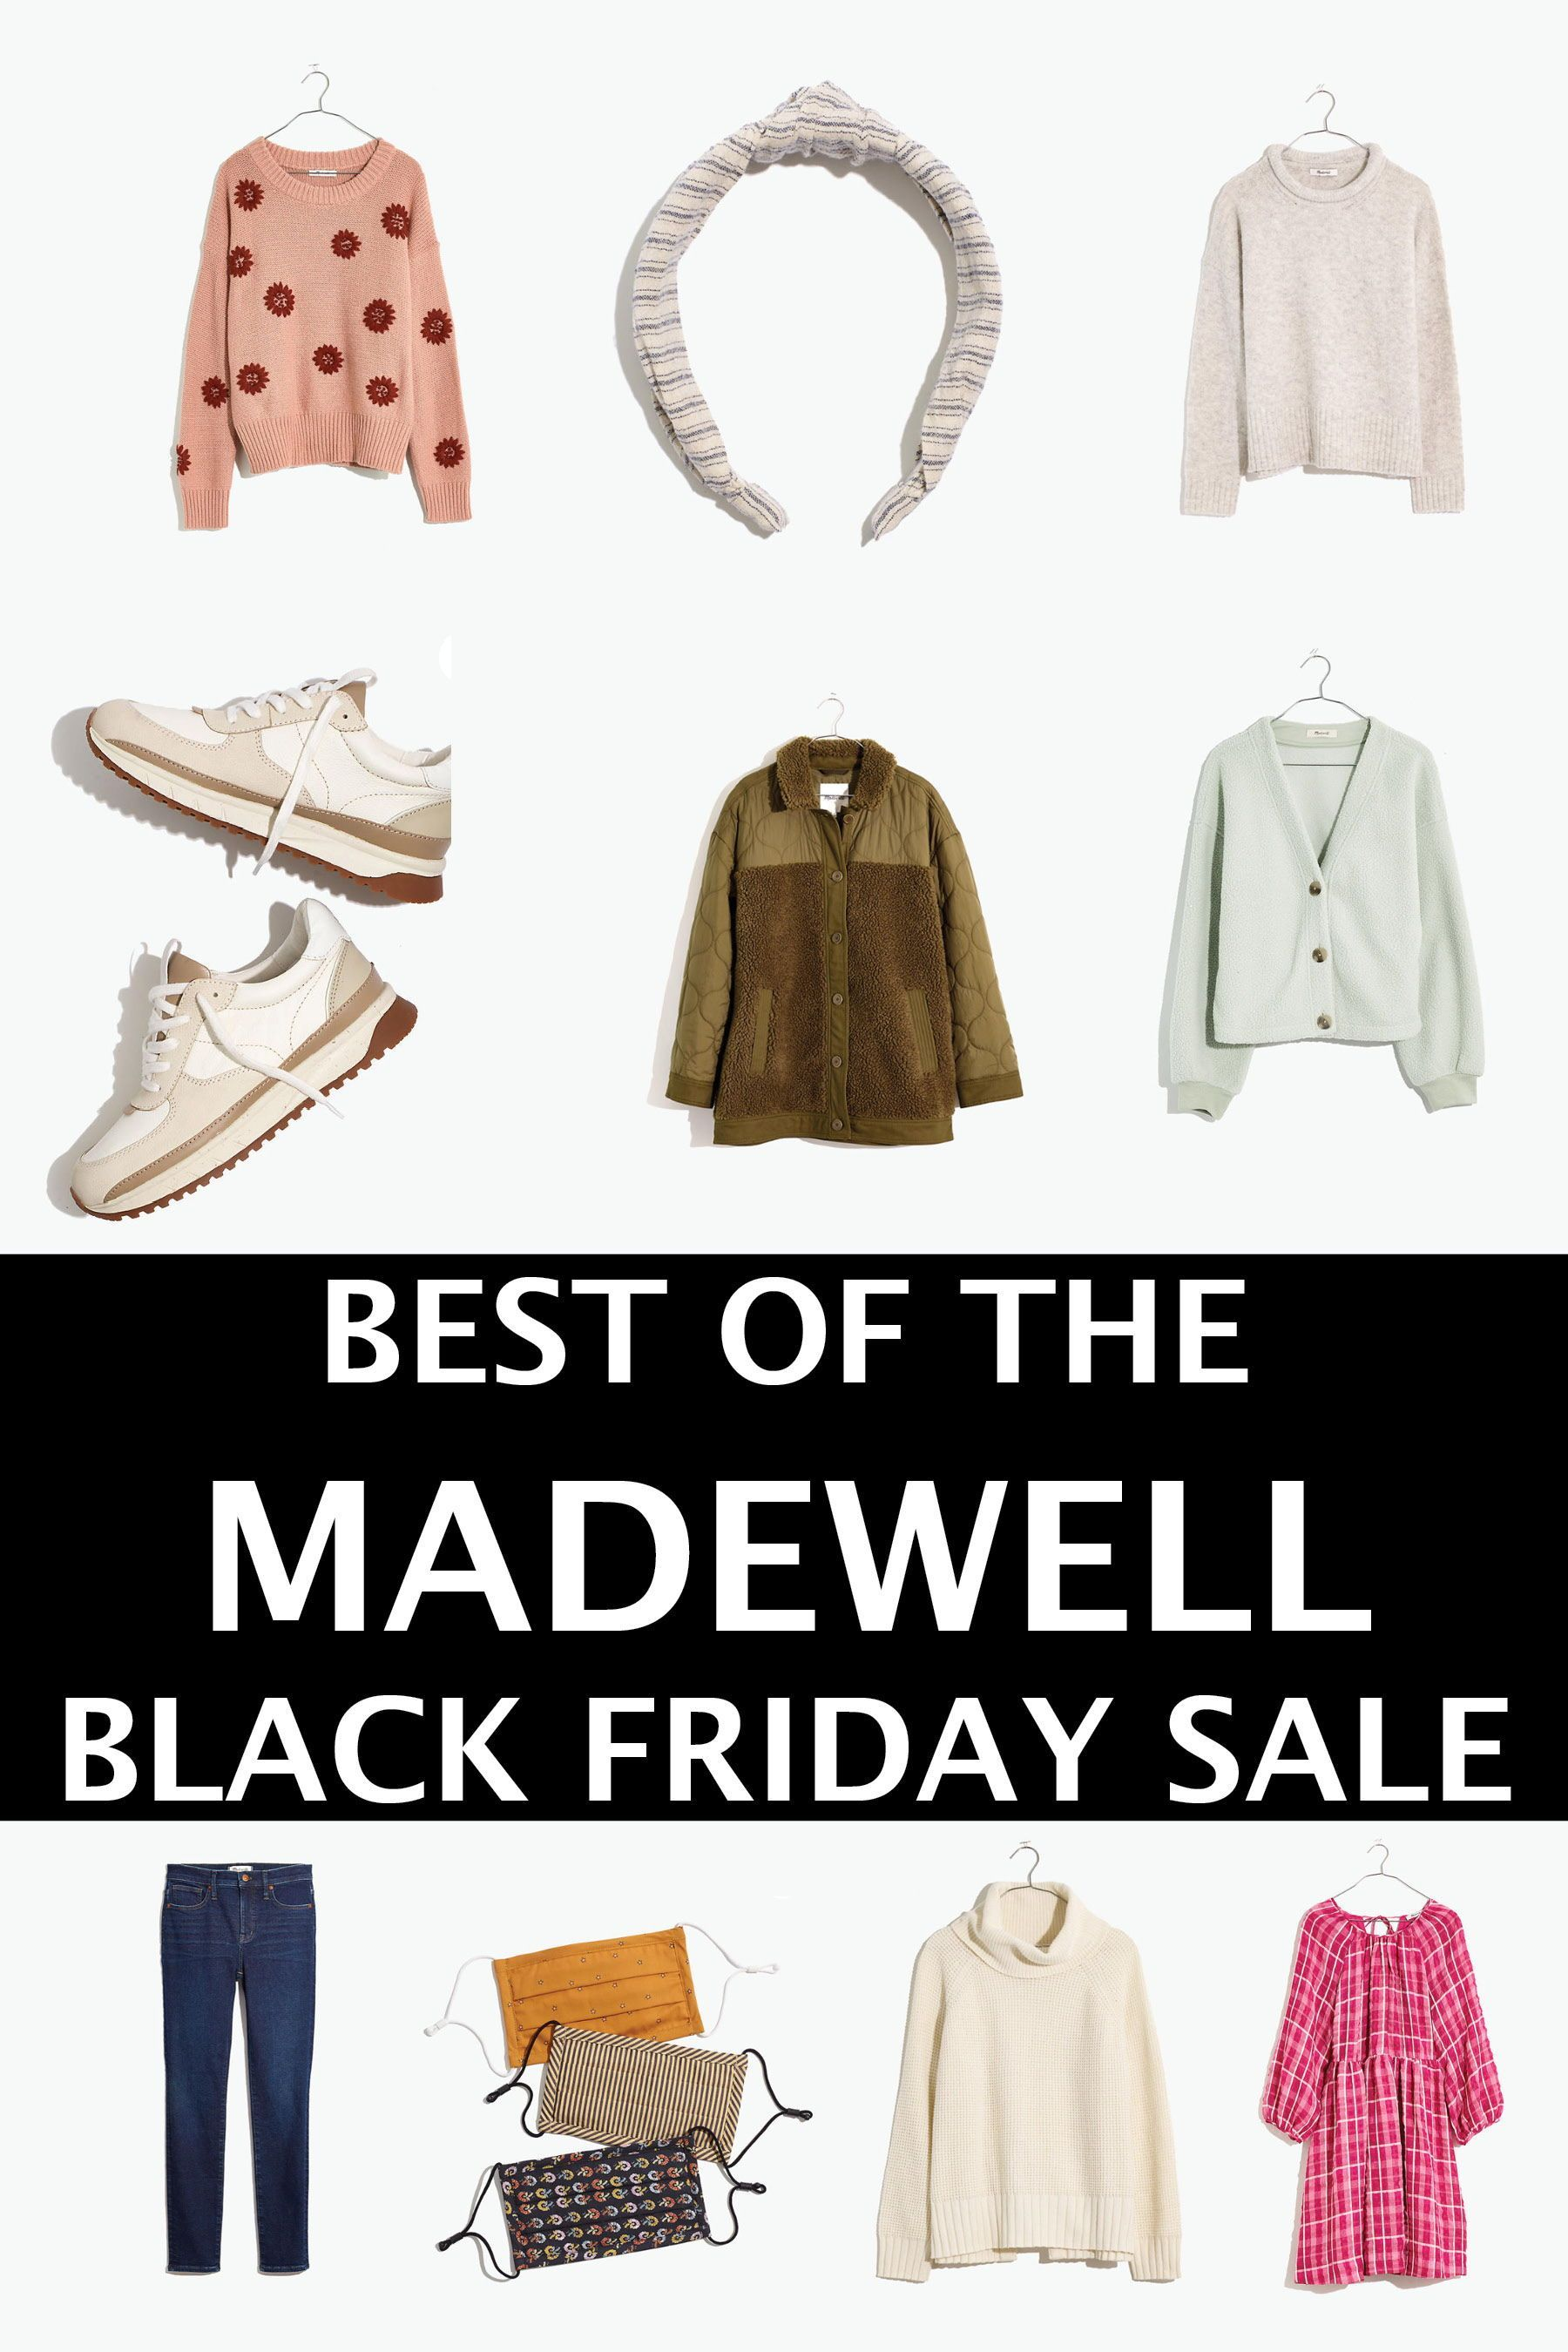 Best Black Friday Deals at Madewell! #blackfriday #cybermonday #blackfridaydeals #blackfridaysales #madewell #shoesale #50%off